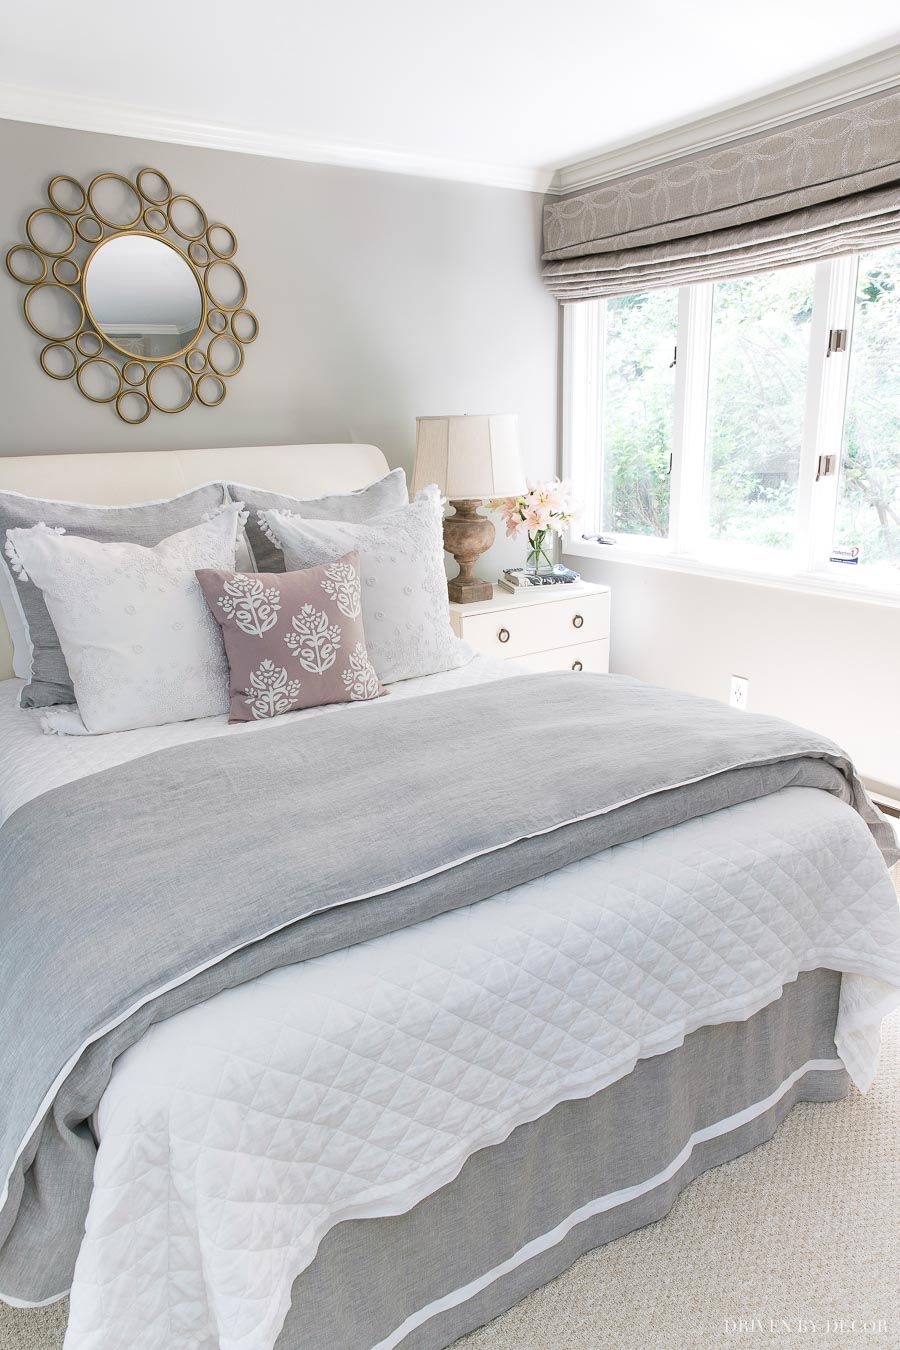 Love the pretty bedding combination of the white linen quilt and gray & white duvet! Links and details in post! #bedding #quilt #duvet #bedroomdecor #bedroomideas #bedroom